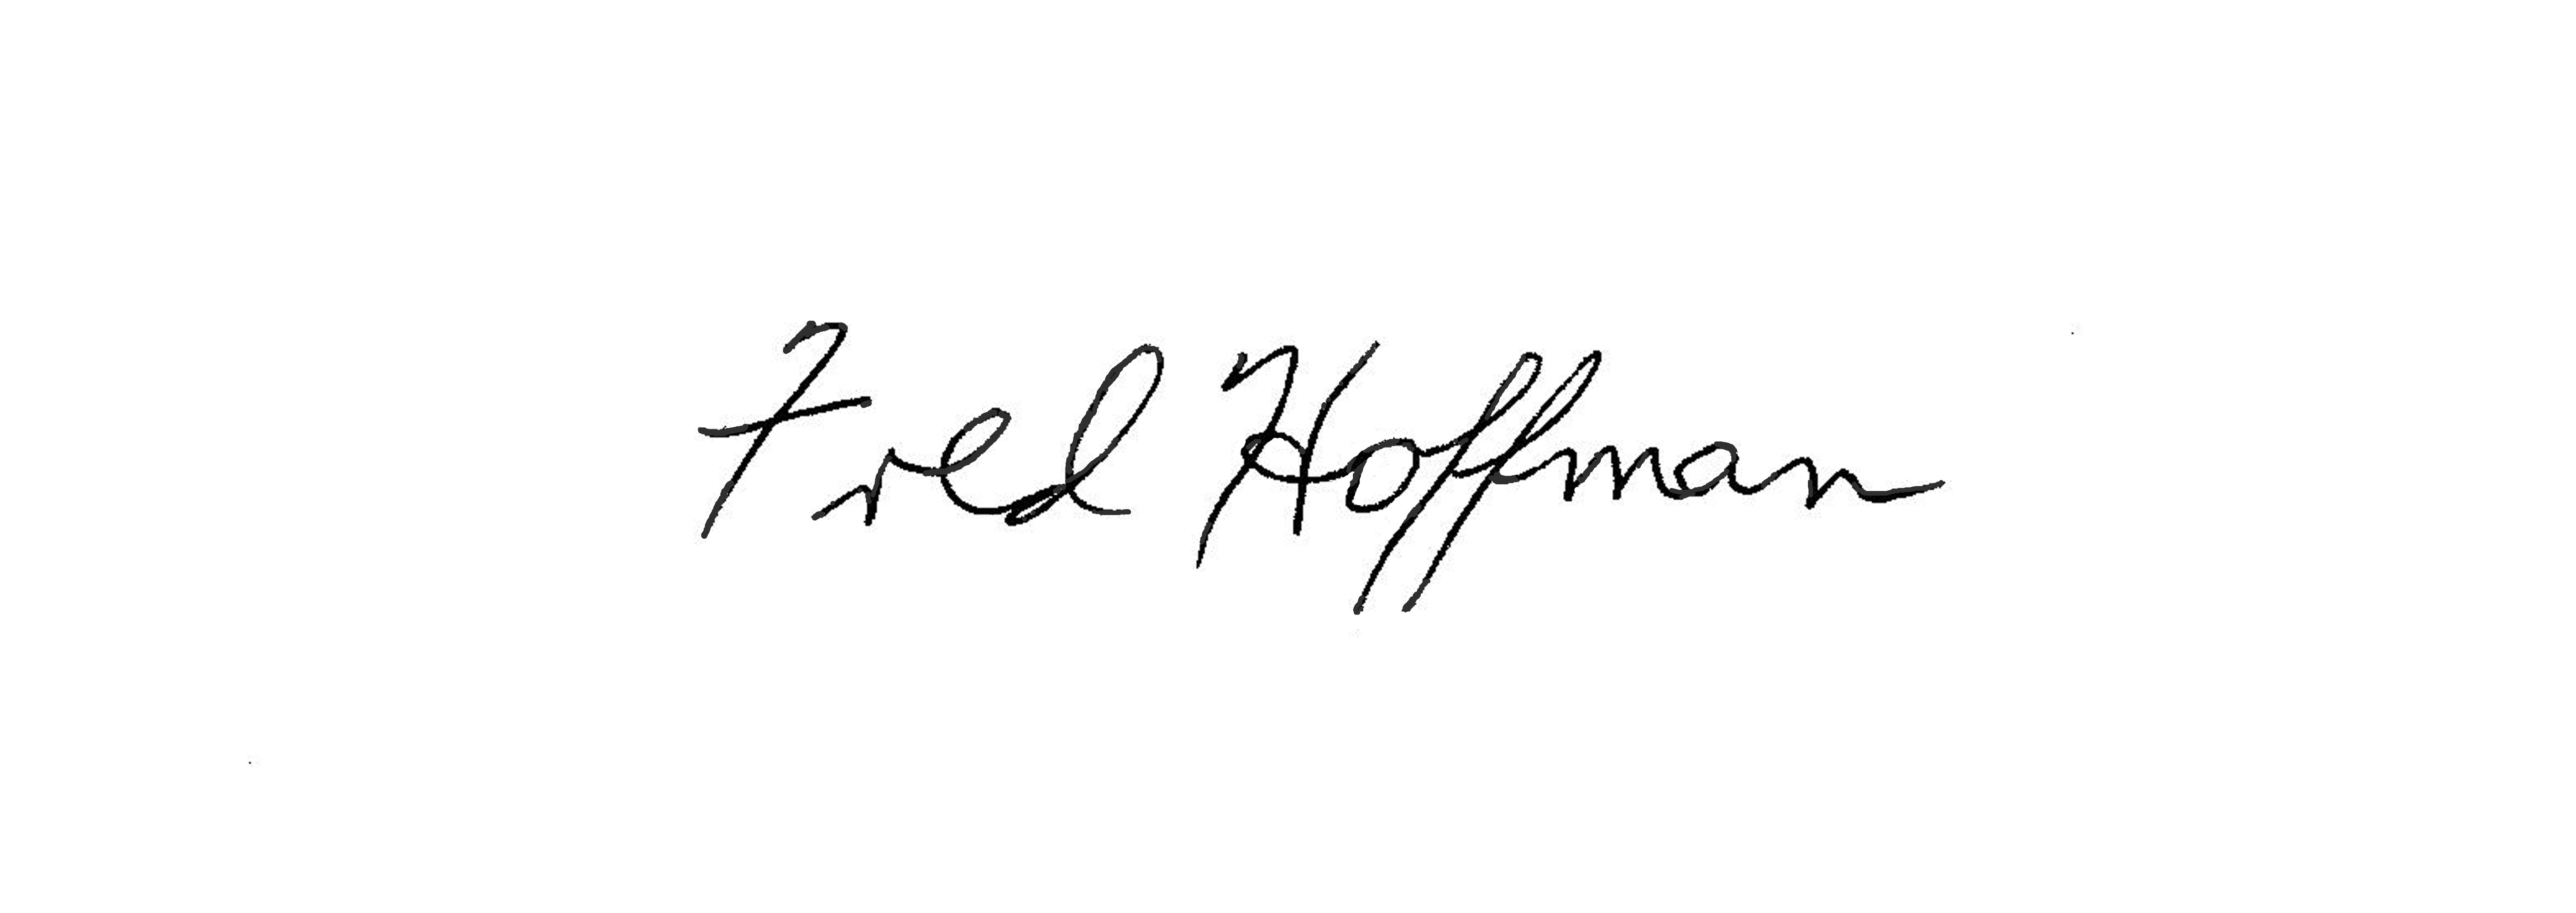 Fred Hoffman's Signature